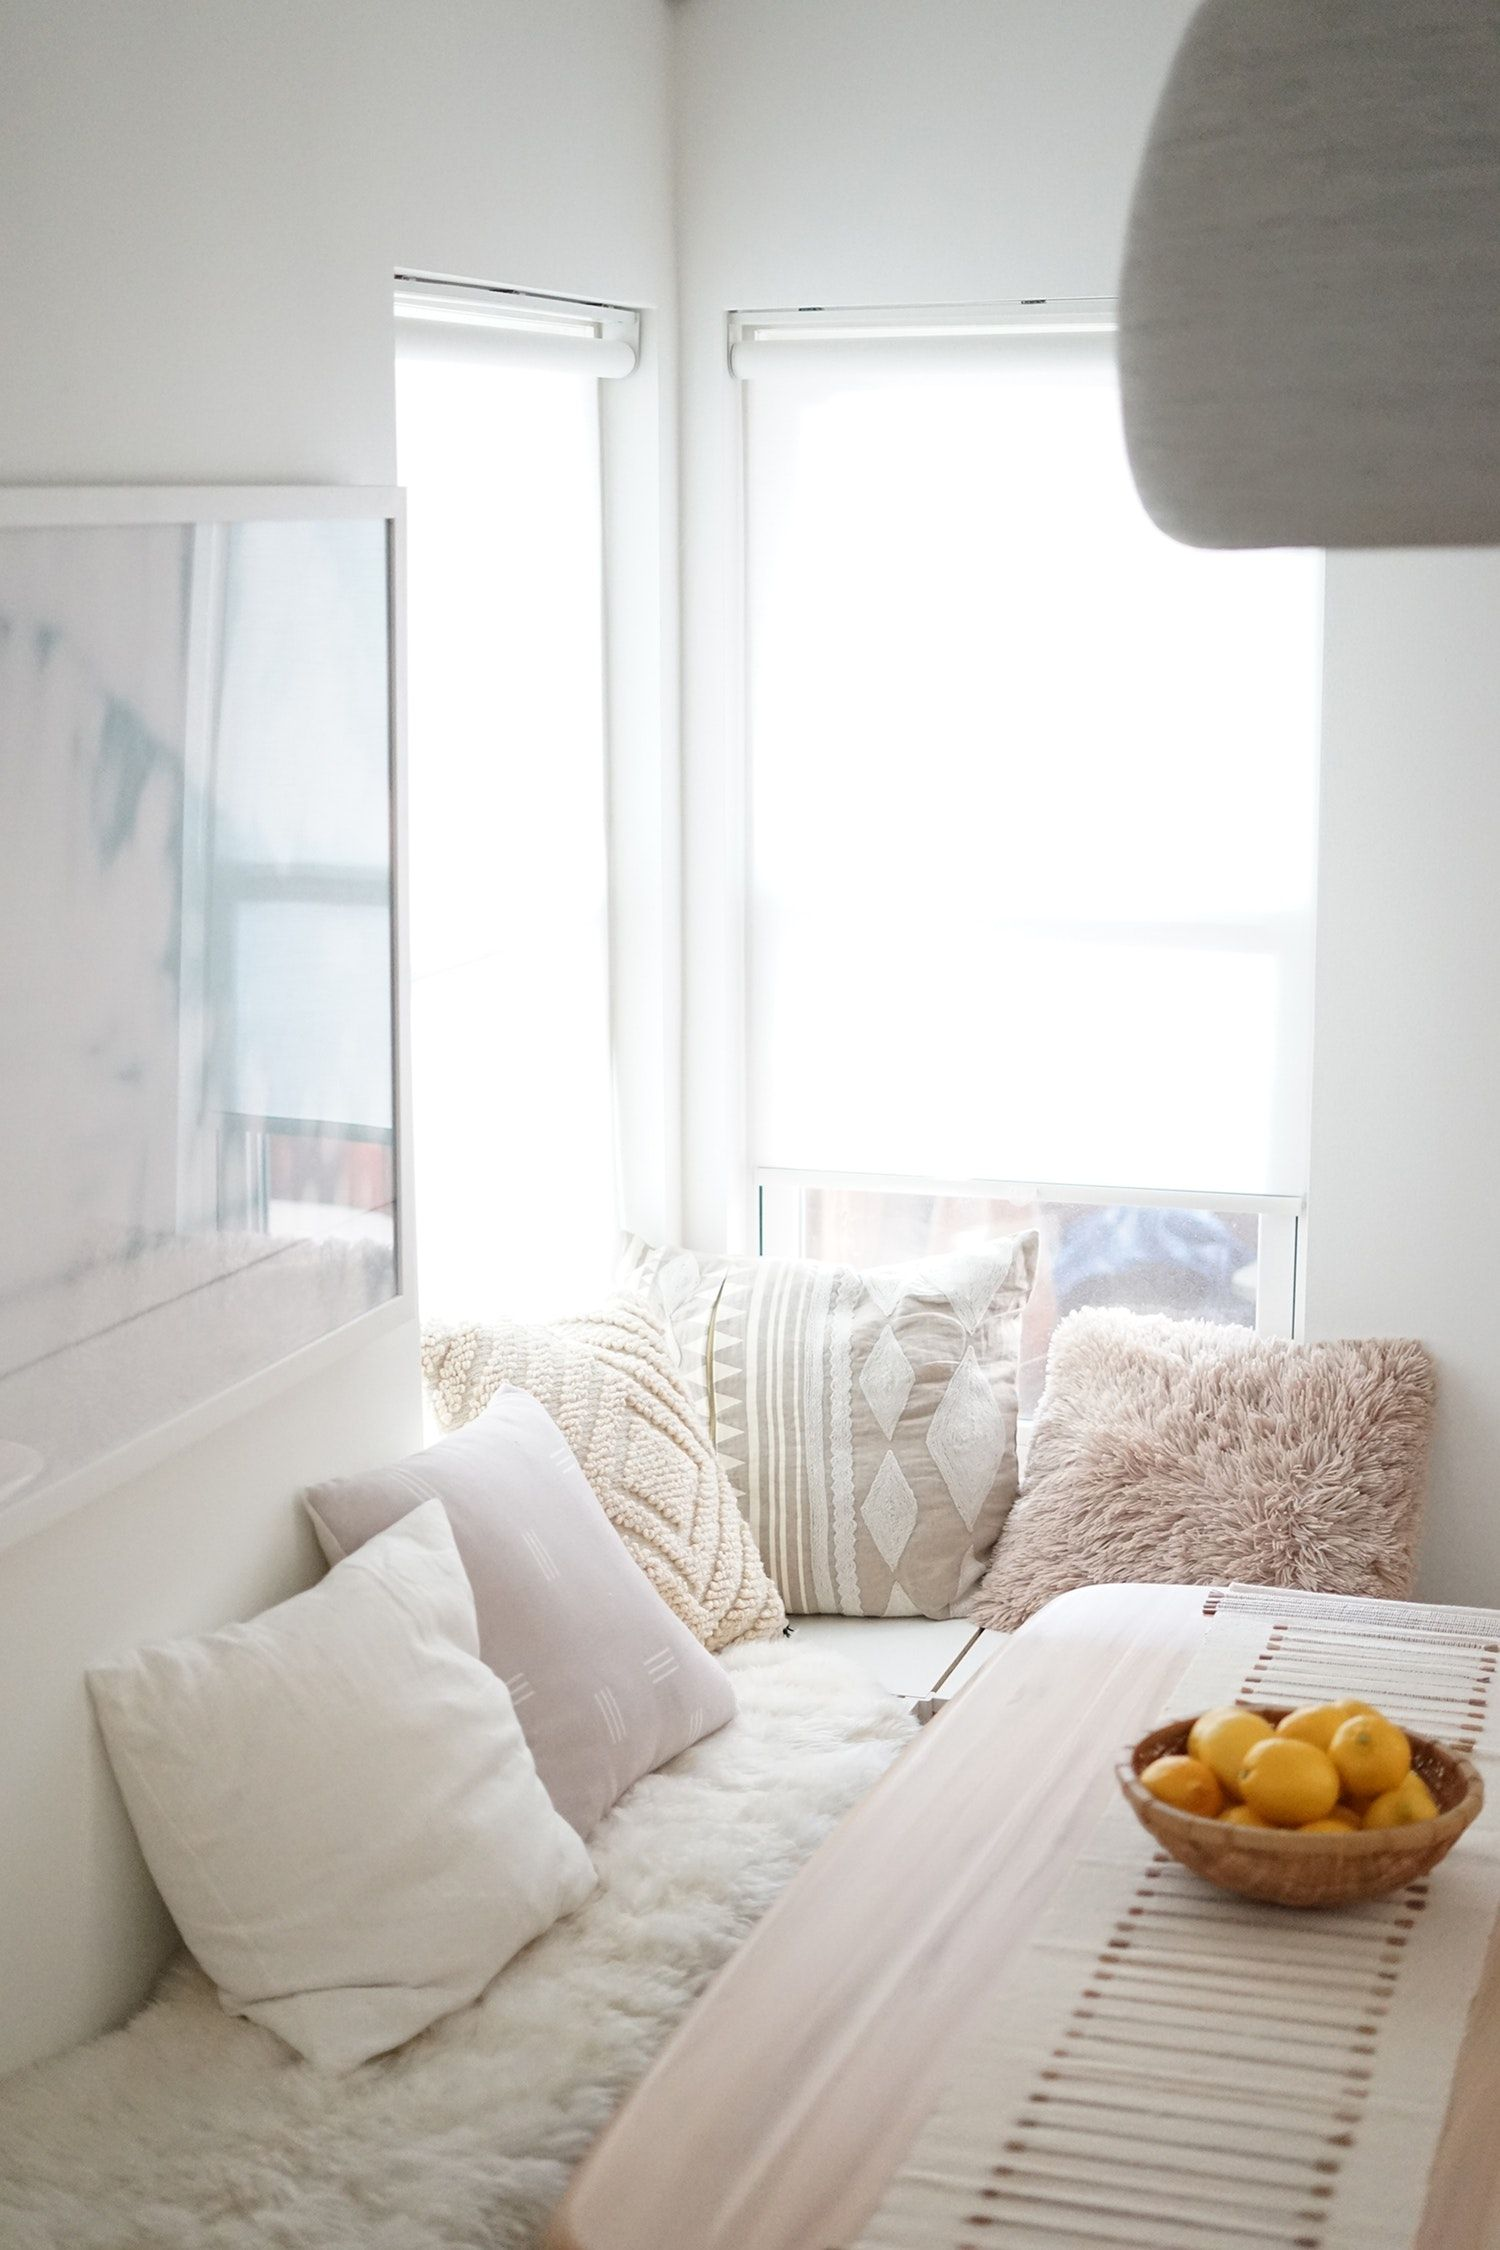 10 Ways To Fake A Window Seat Even As A Renter With Images Living Room Furniture Layout Cheap Patio Furniture Apartment Decor